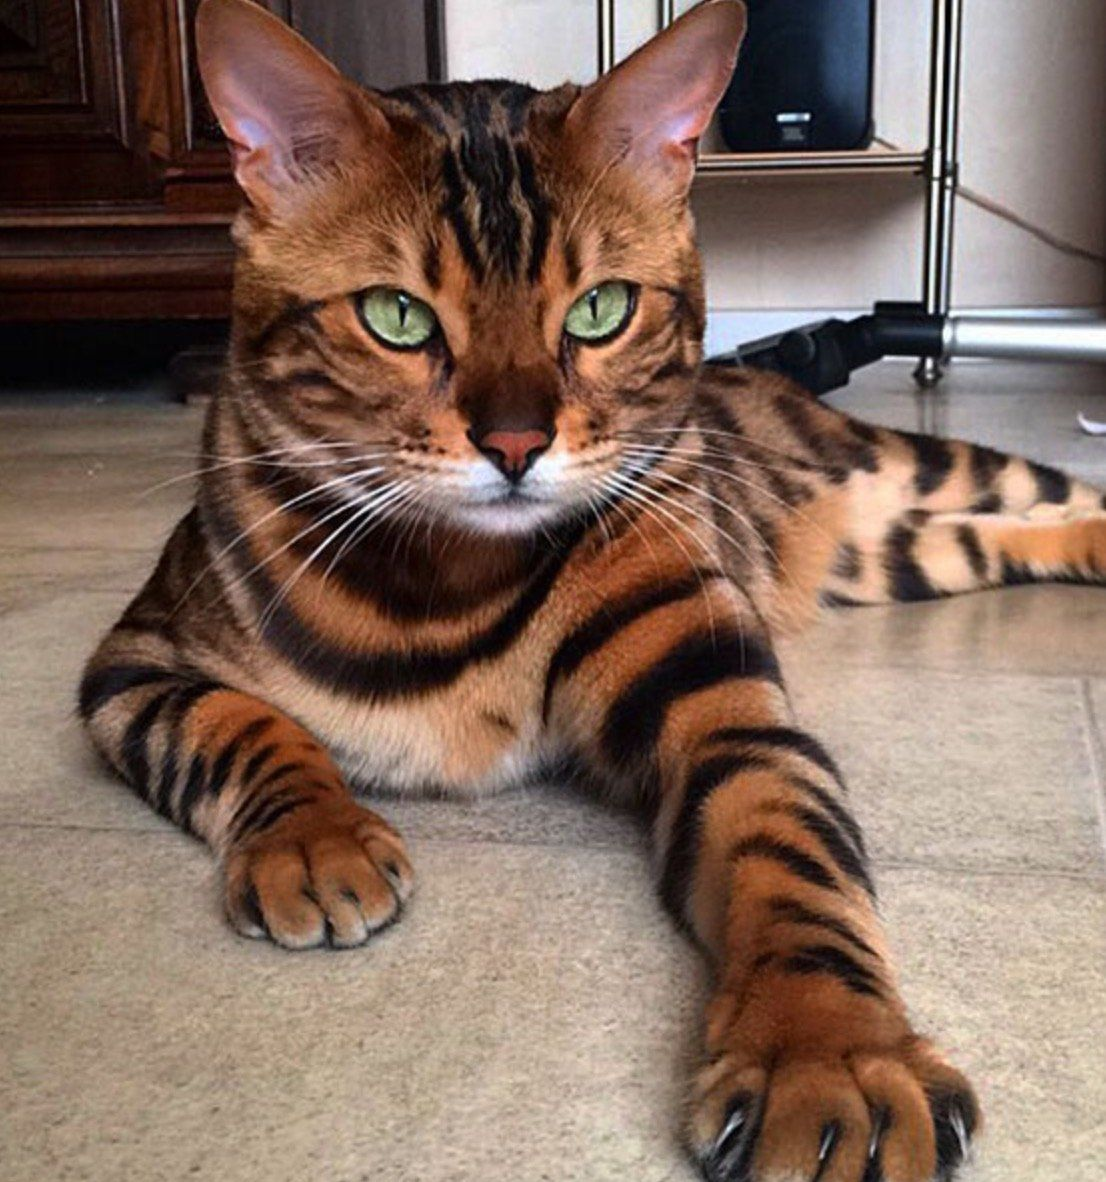 Thor The Bengal Cat Cats Cute Animals Kittens